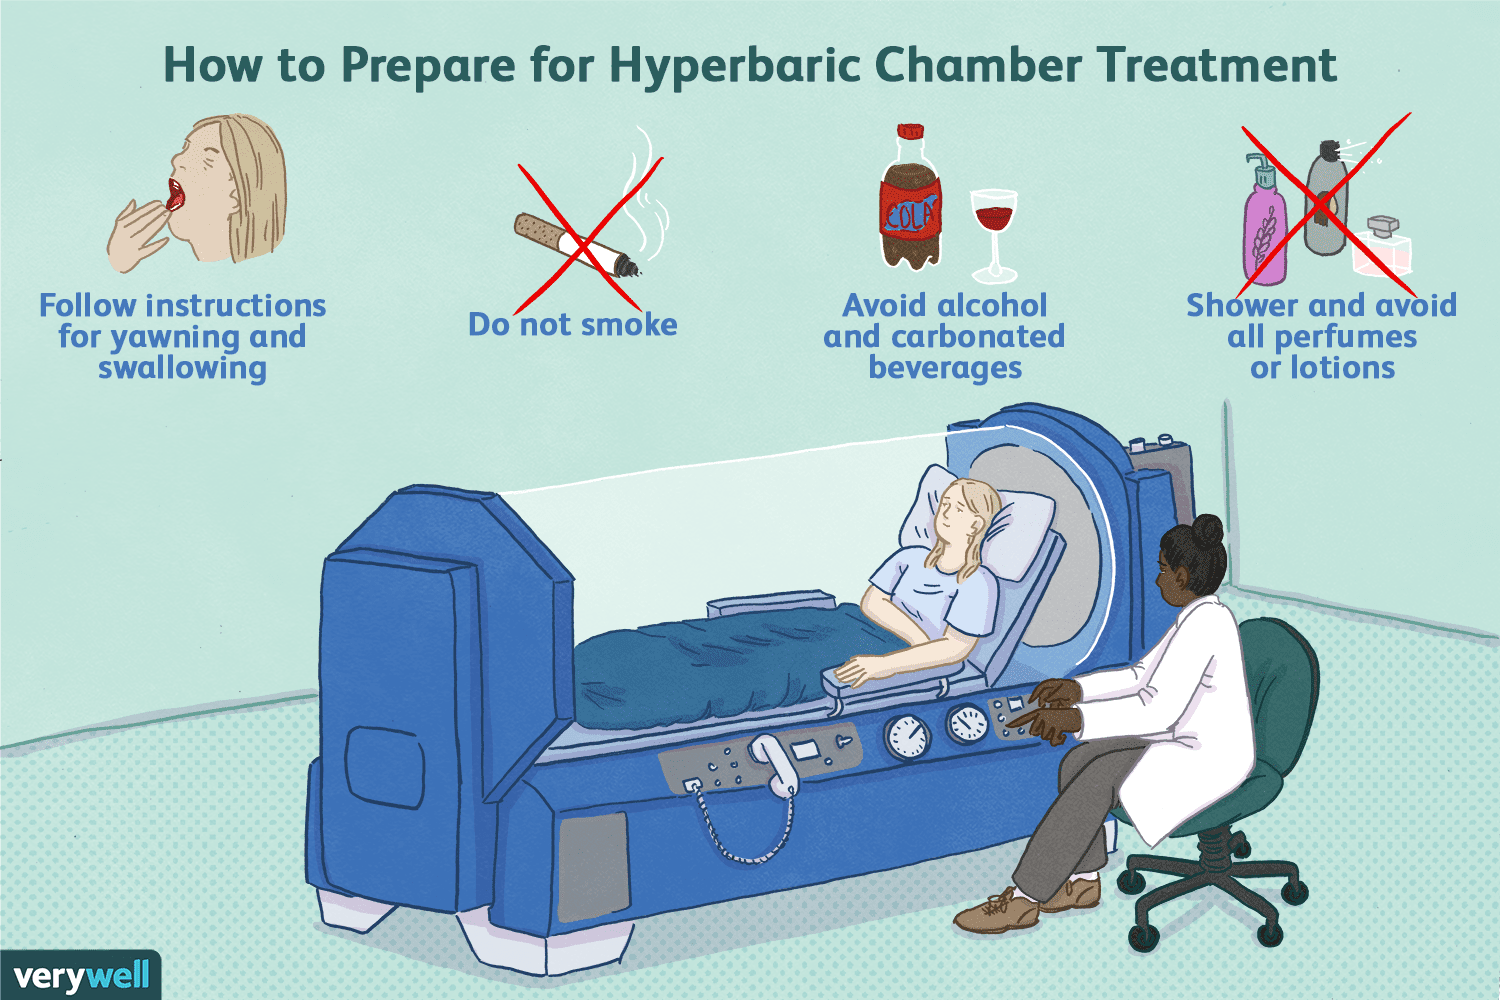 How to prepare for hyperbaric chamber treatment